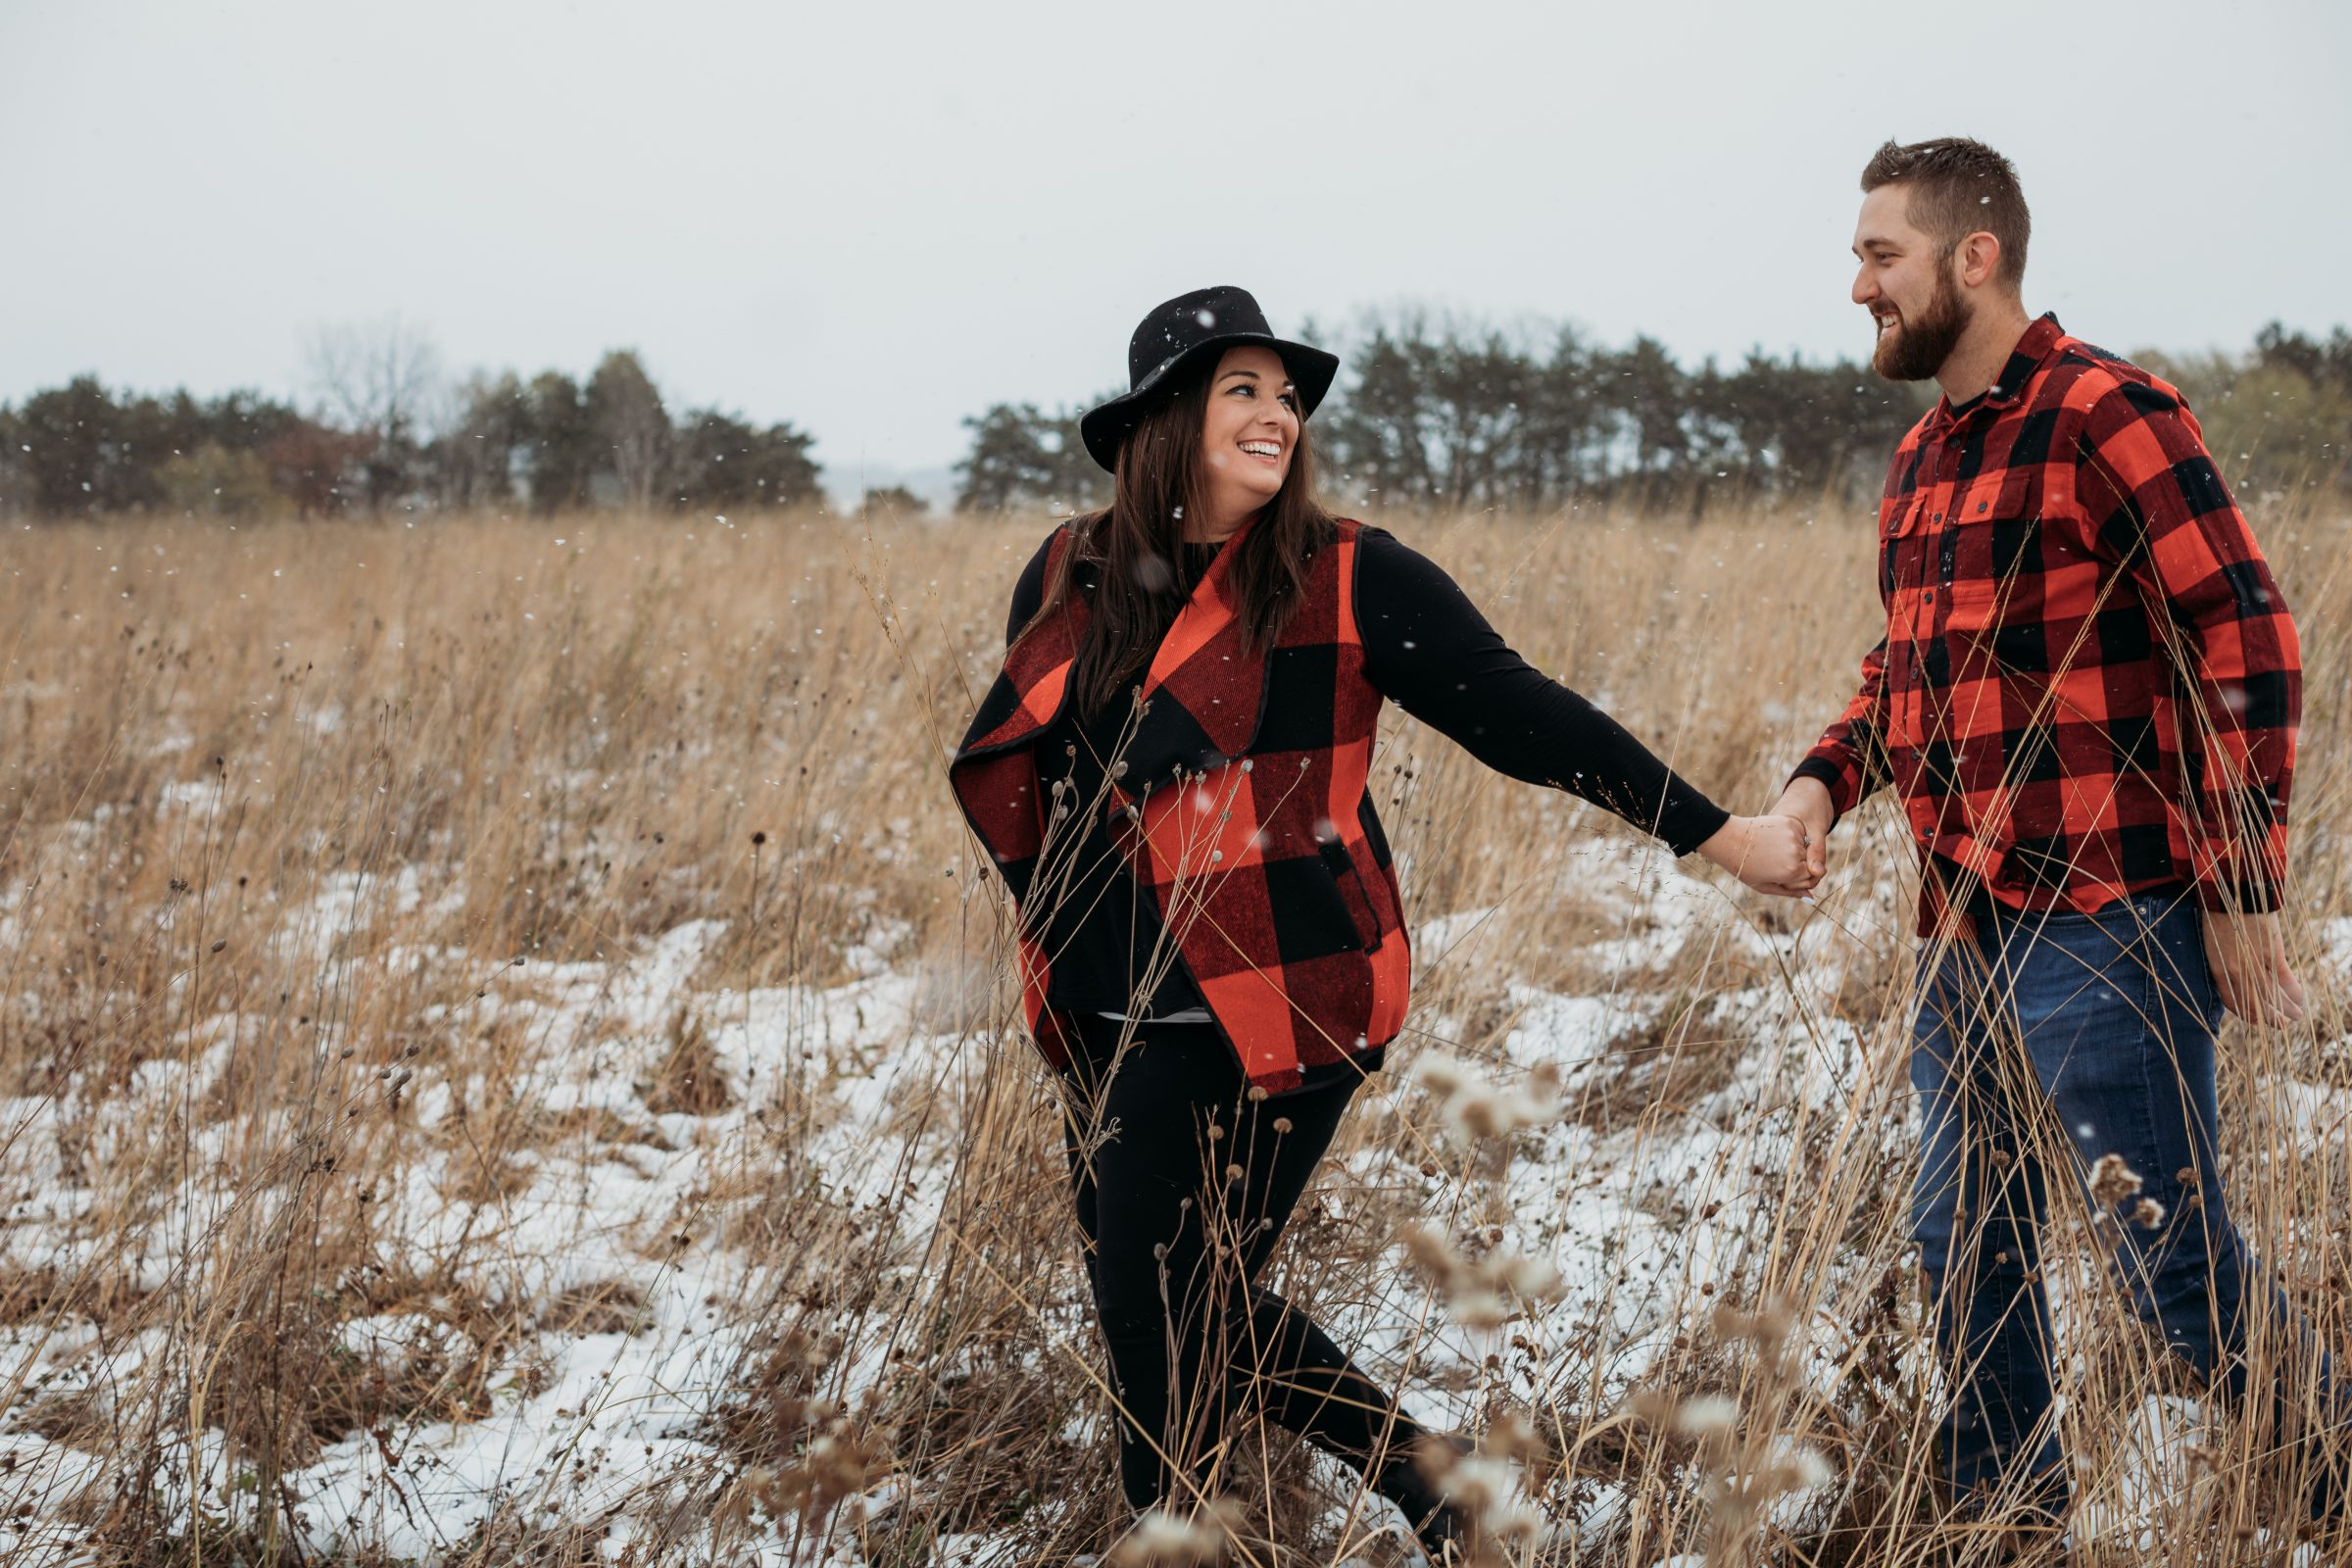 Couple walks through field in engagement photo by a woman-owned wedding business